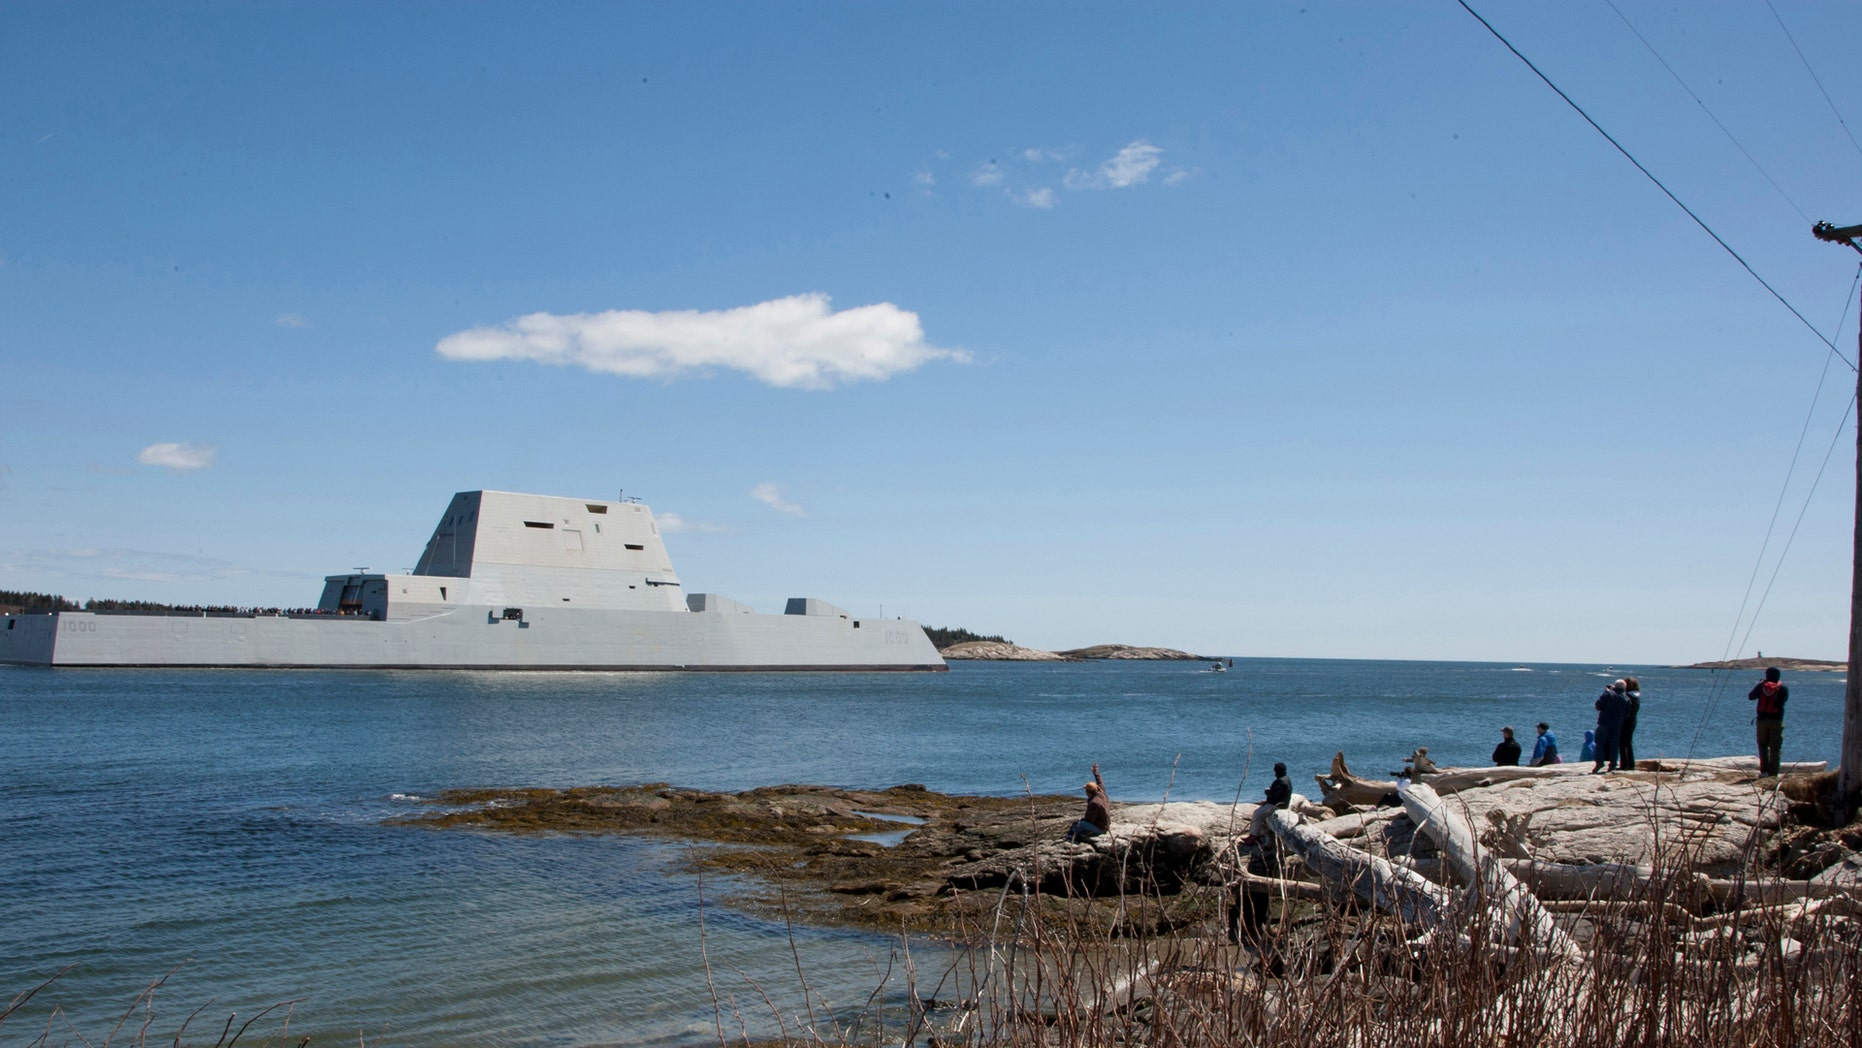 File photo: The future guided-missile destroyer USS Zumwalt (DDG 1000) departs Bath, Maine to conduct acceptance trials April 20, 2016. (REUTERS/US Navy/Handout via Reuters)